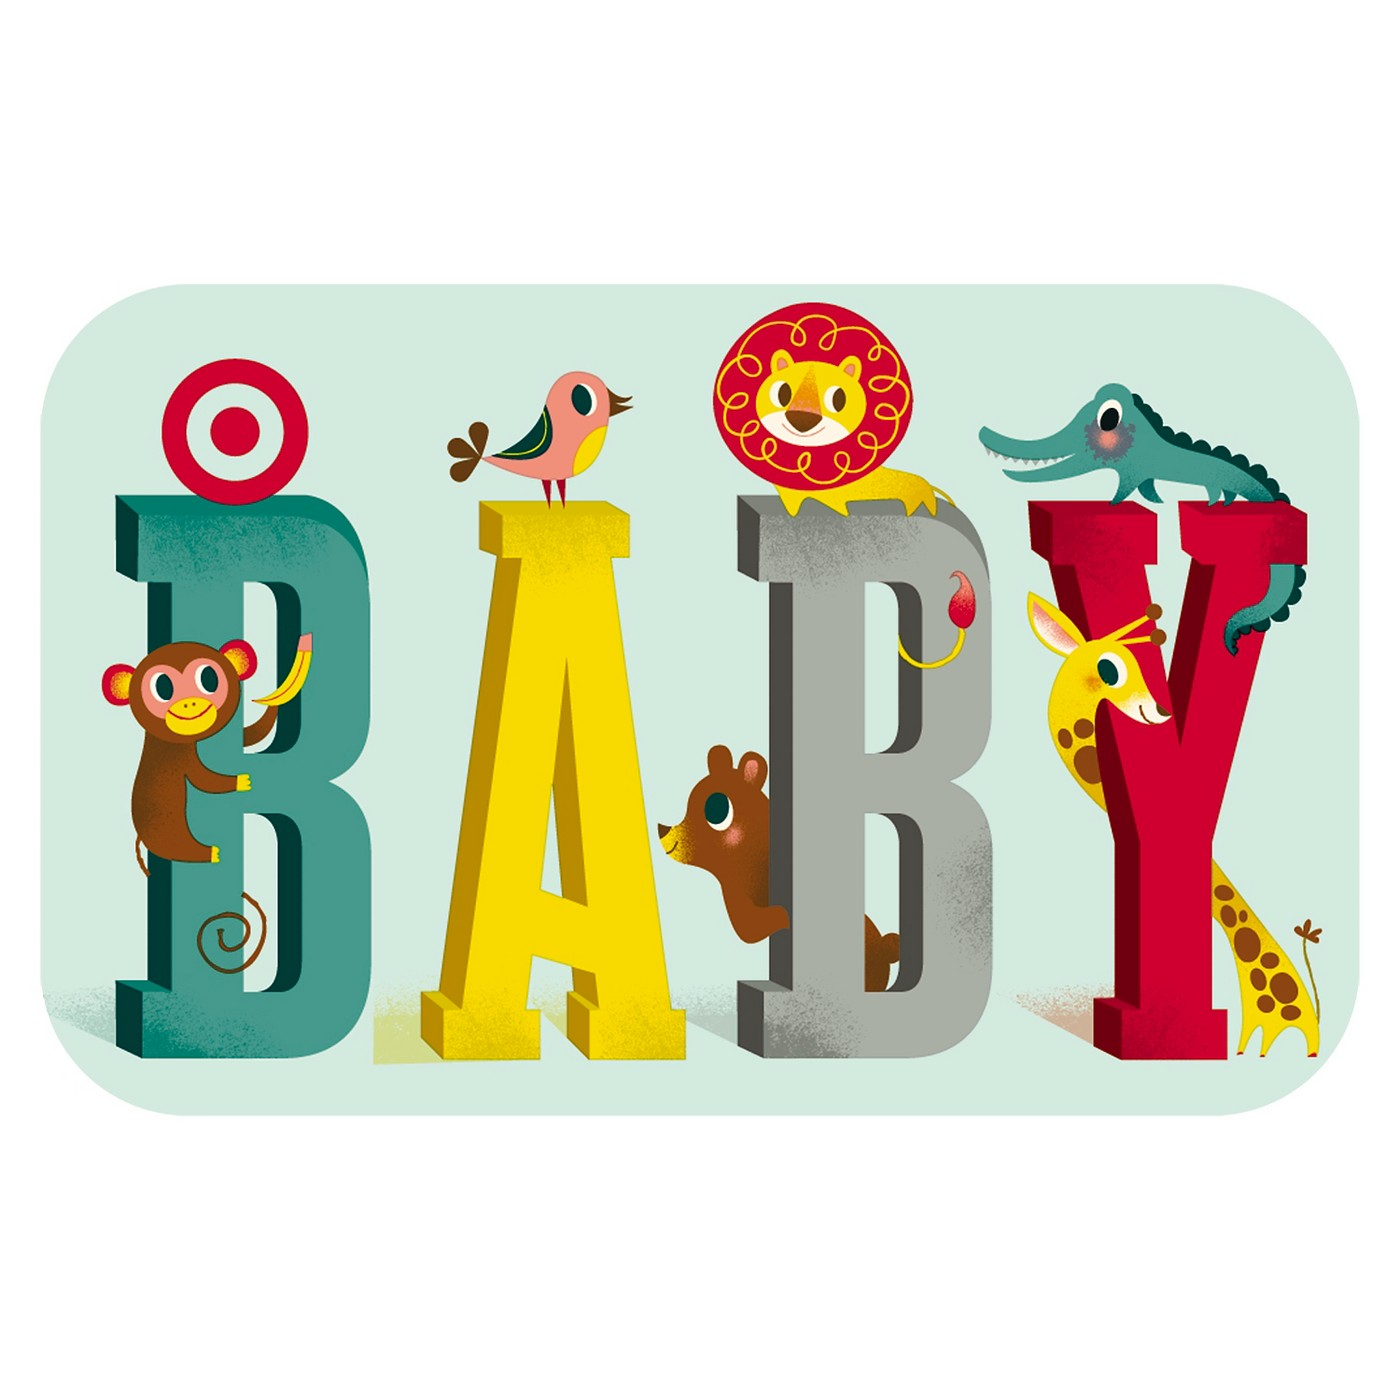 Baby Animals GiftCard - image 1 of 1